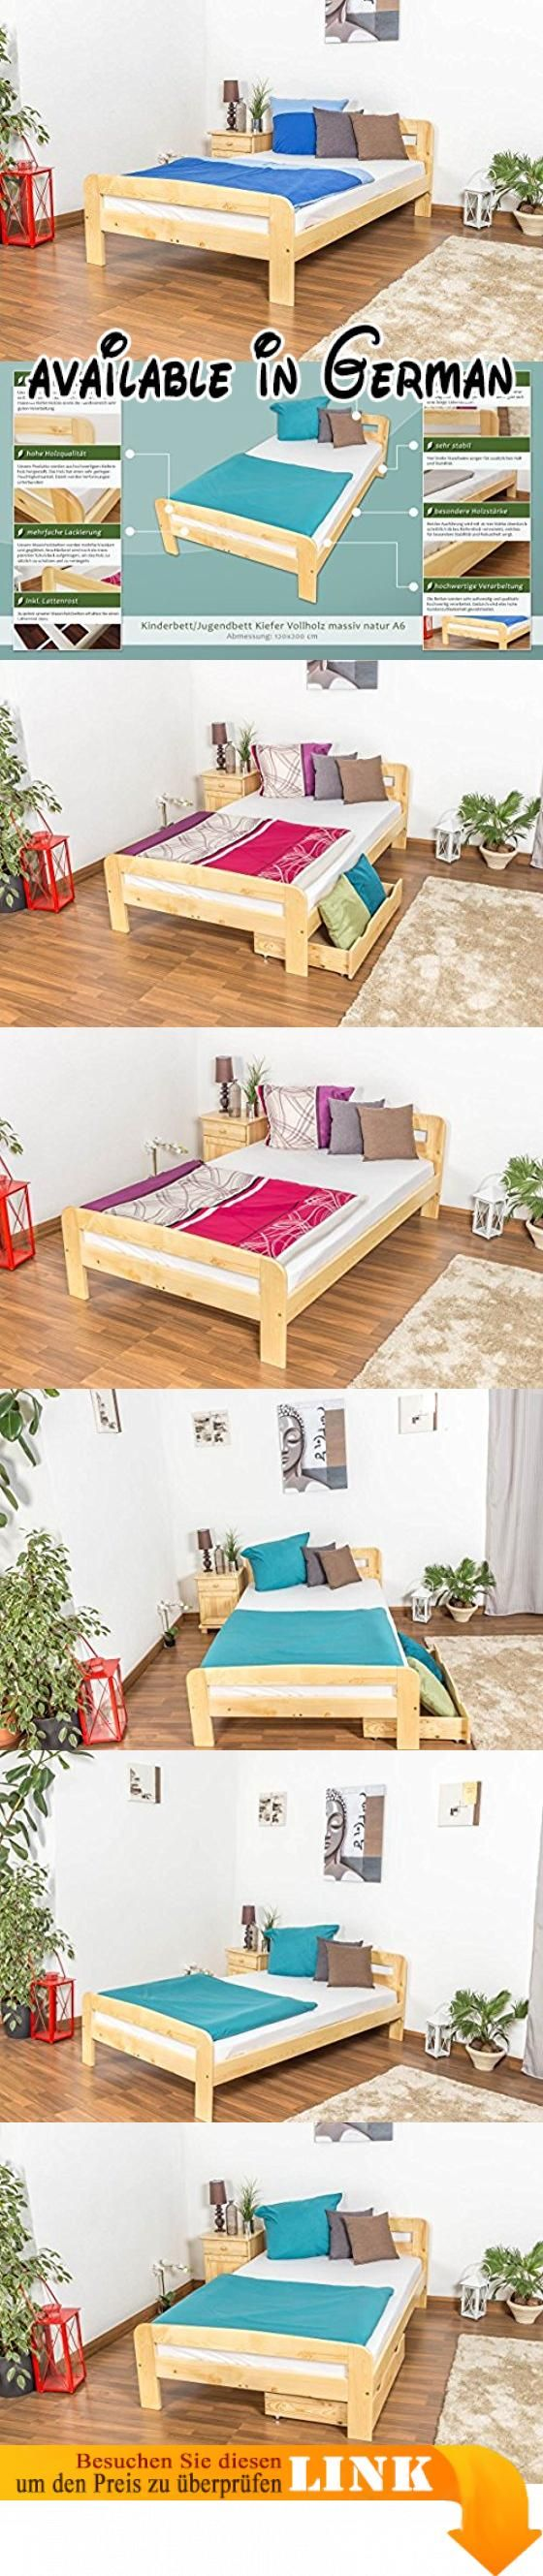 die besten 25 bett 120x200 ideen auf pinterest bett 120 cm bett 90x200 und m dchen bett 90x200. Black Bedroom Furniture Sets. Home Design Ideas